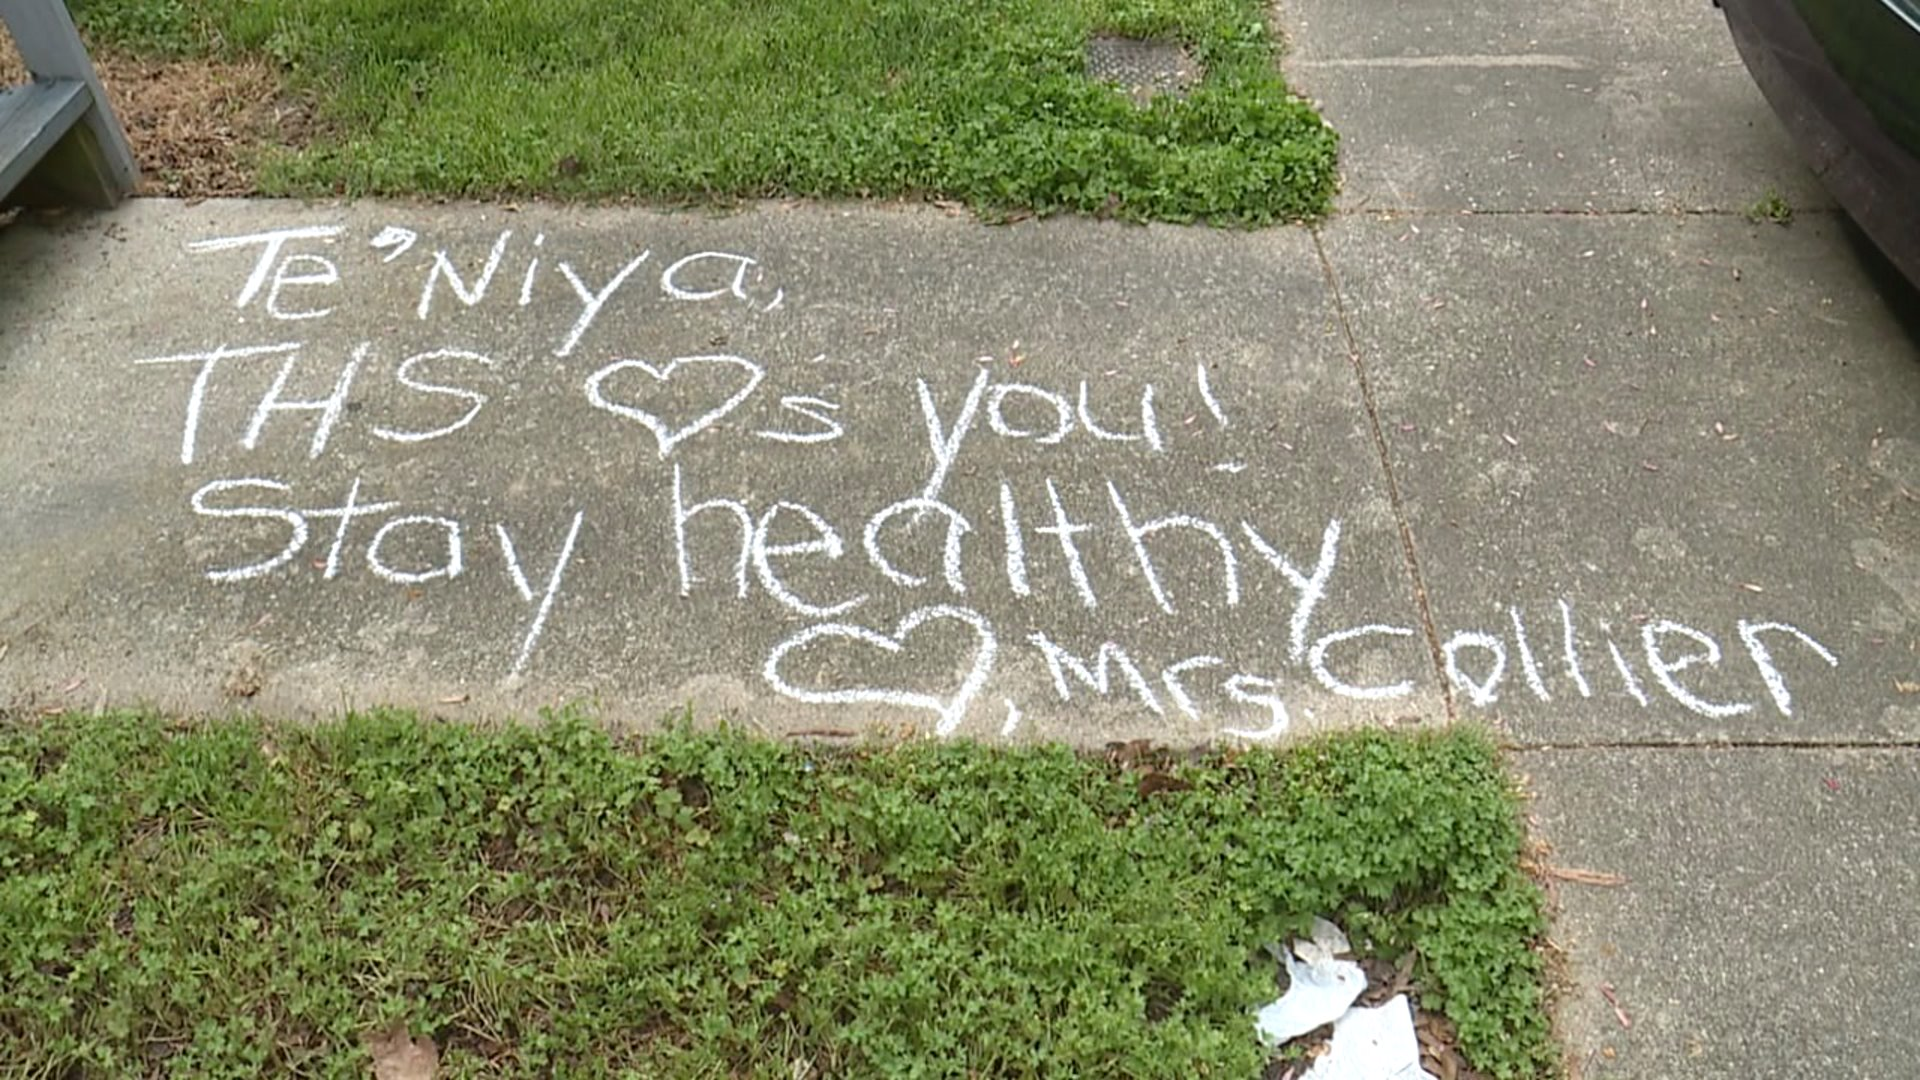 Thomasville teacher writes uplifting messages to students with chalk